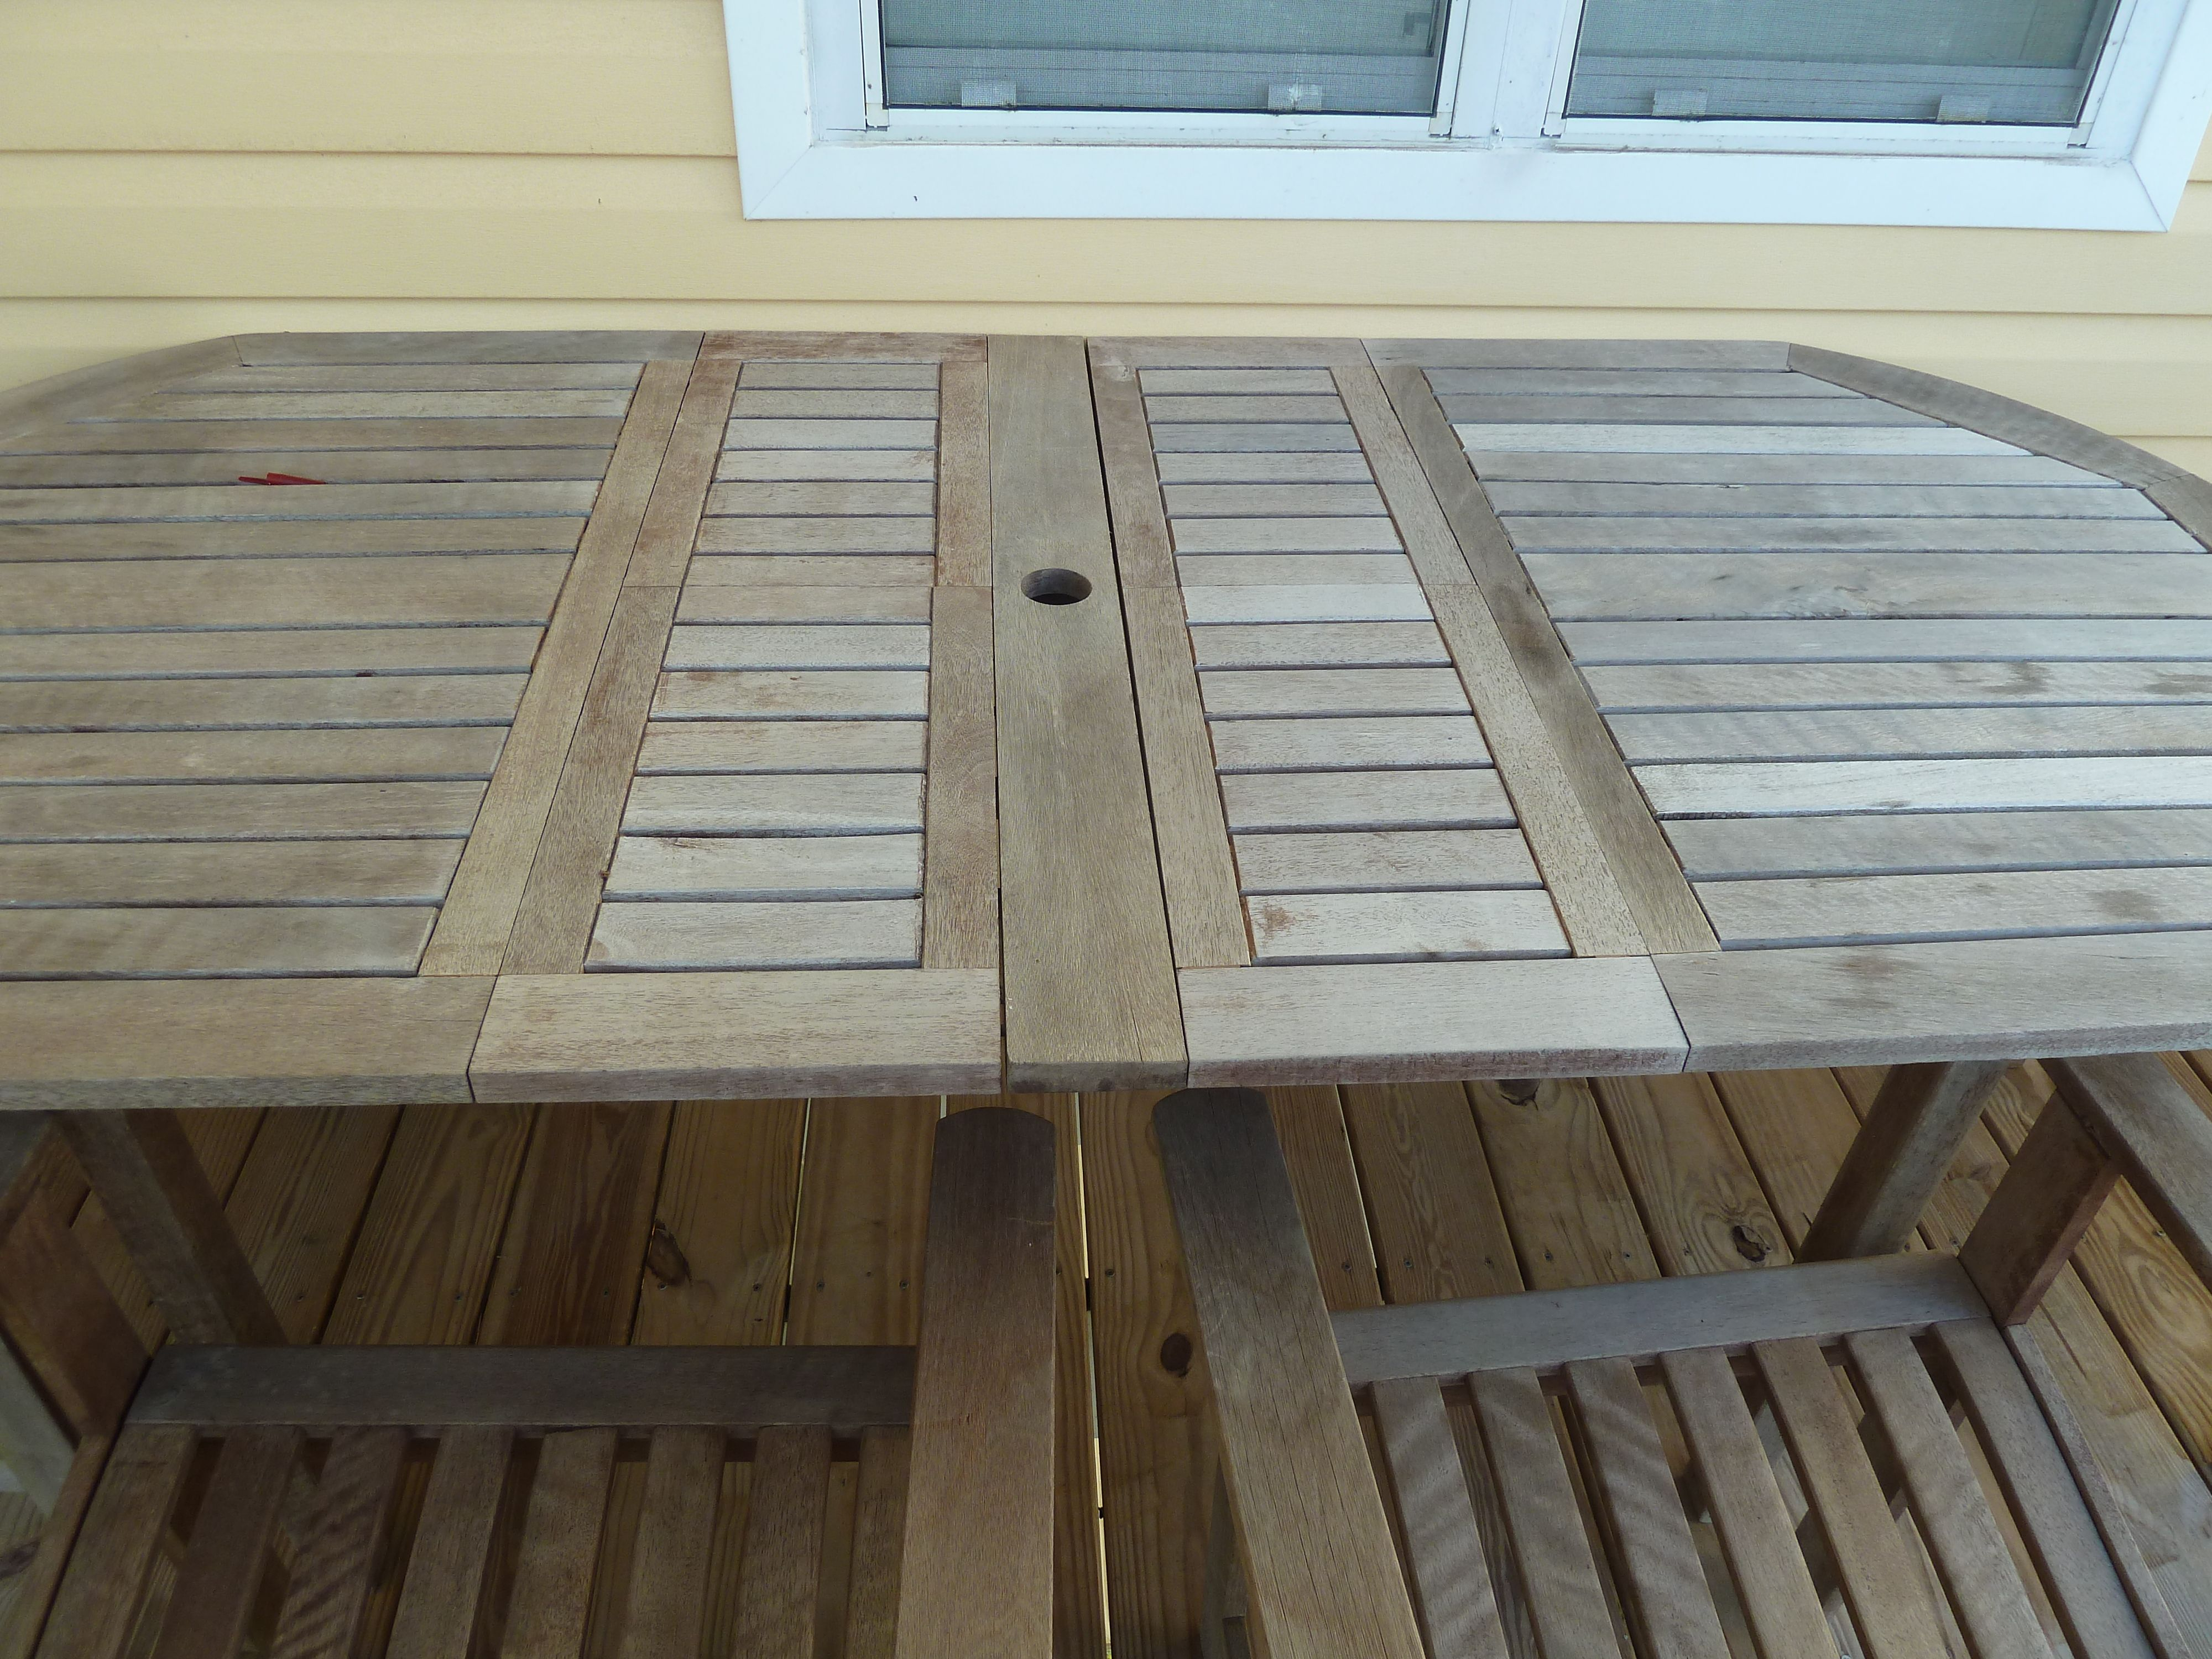 Outdoor Dining Table Before Stain